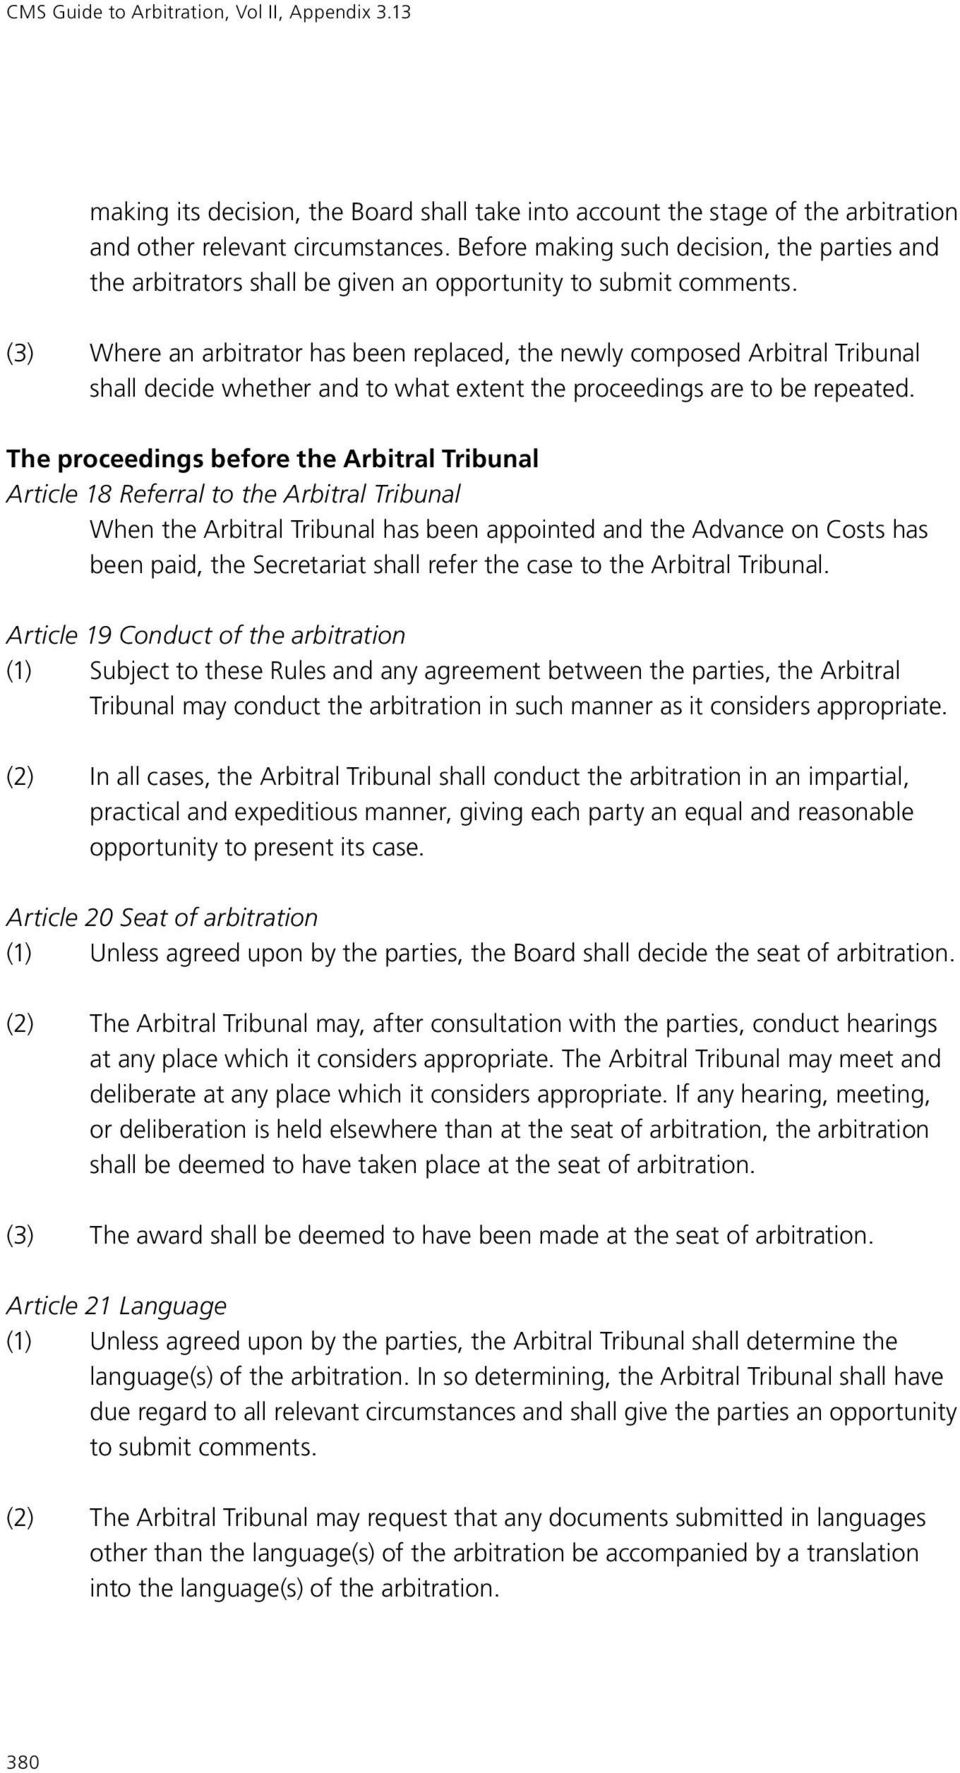 (3) Where an arbitrator has been replaced, the newly composed Arbitral Tribunal shall decide whether and to what extent the proceedings are to be repeated.